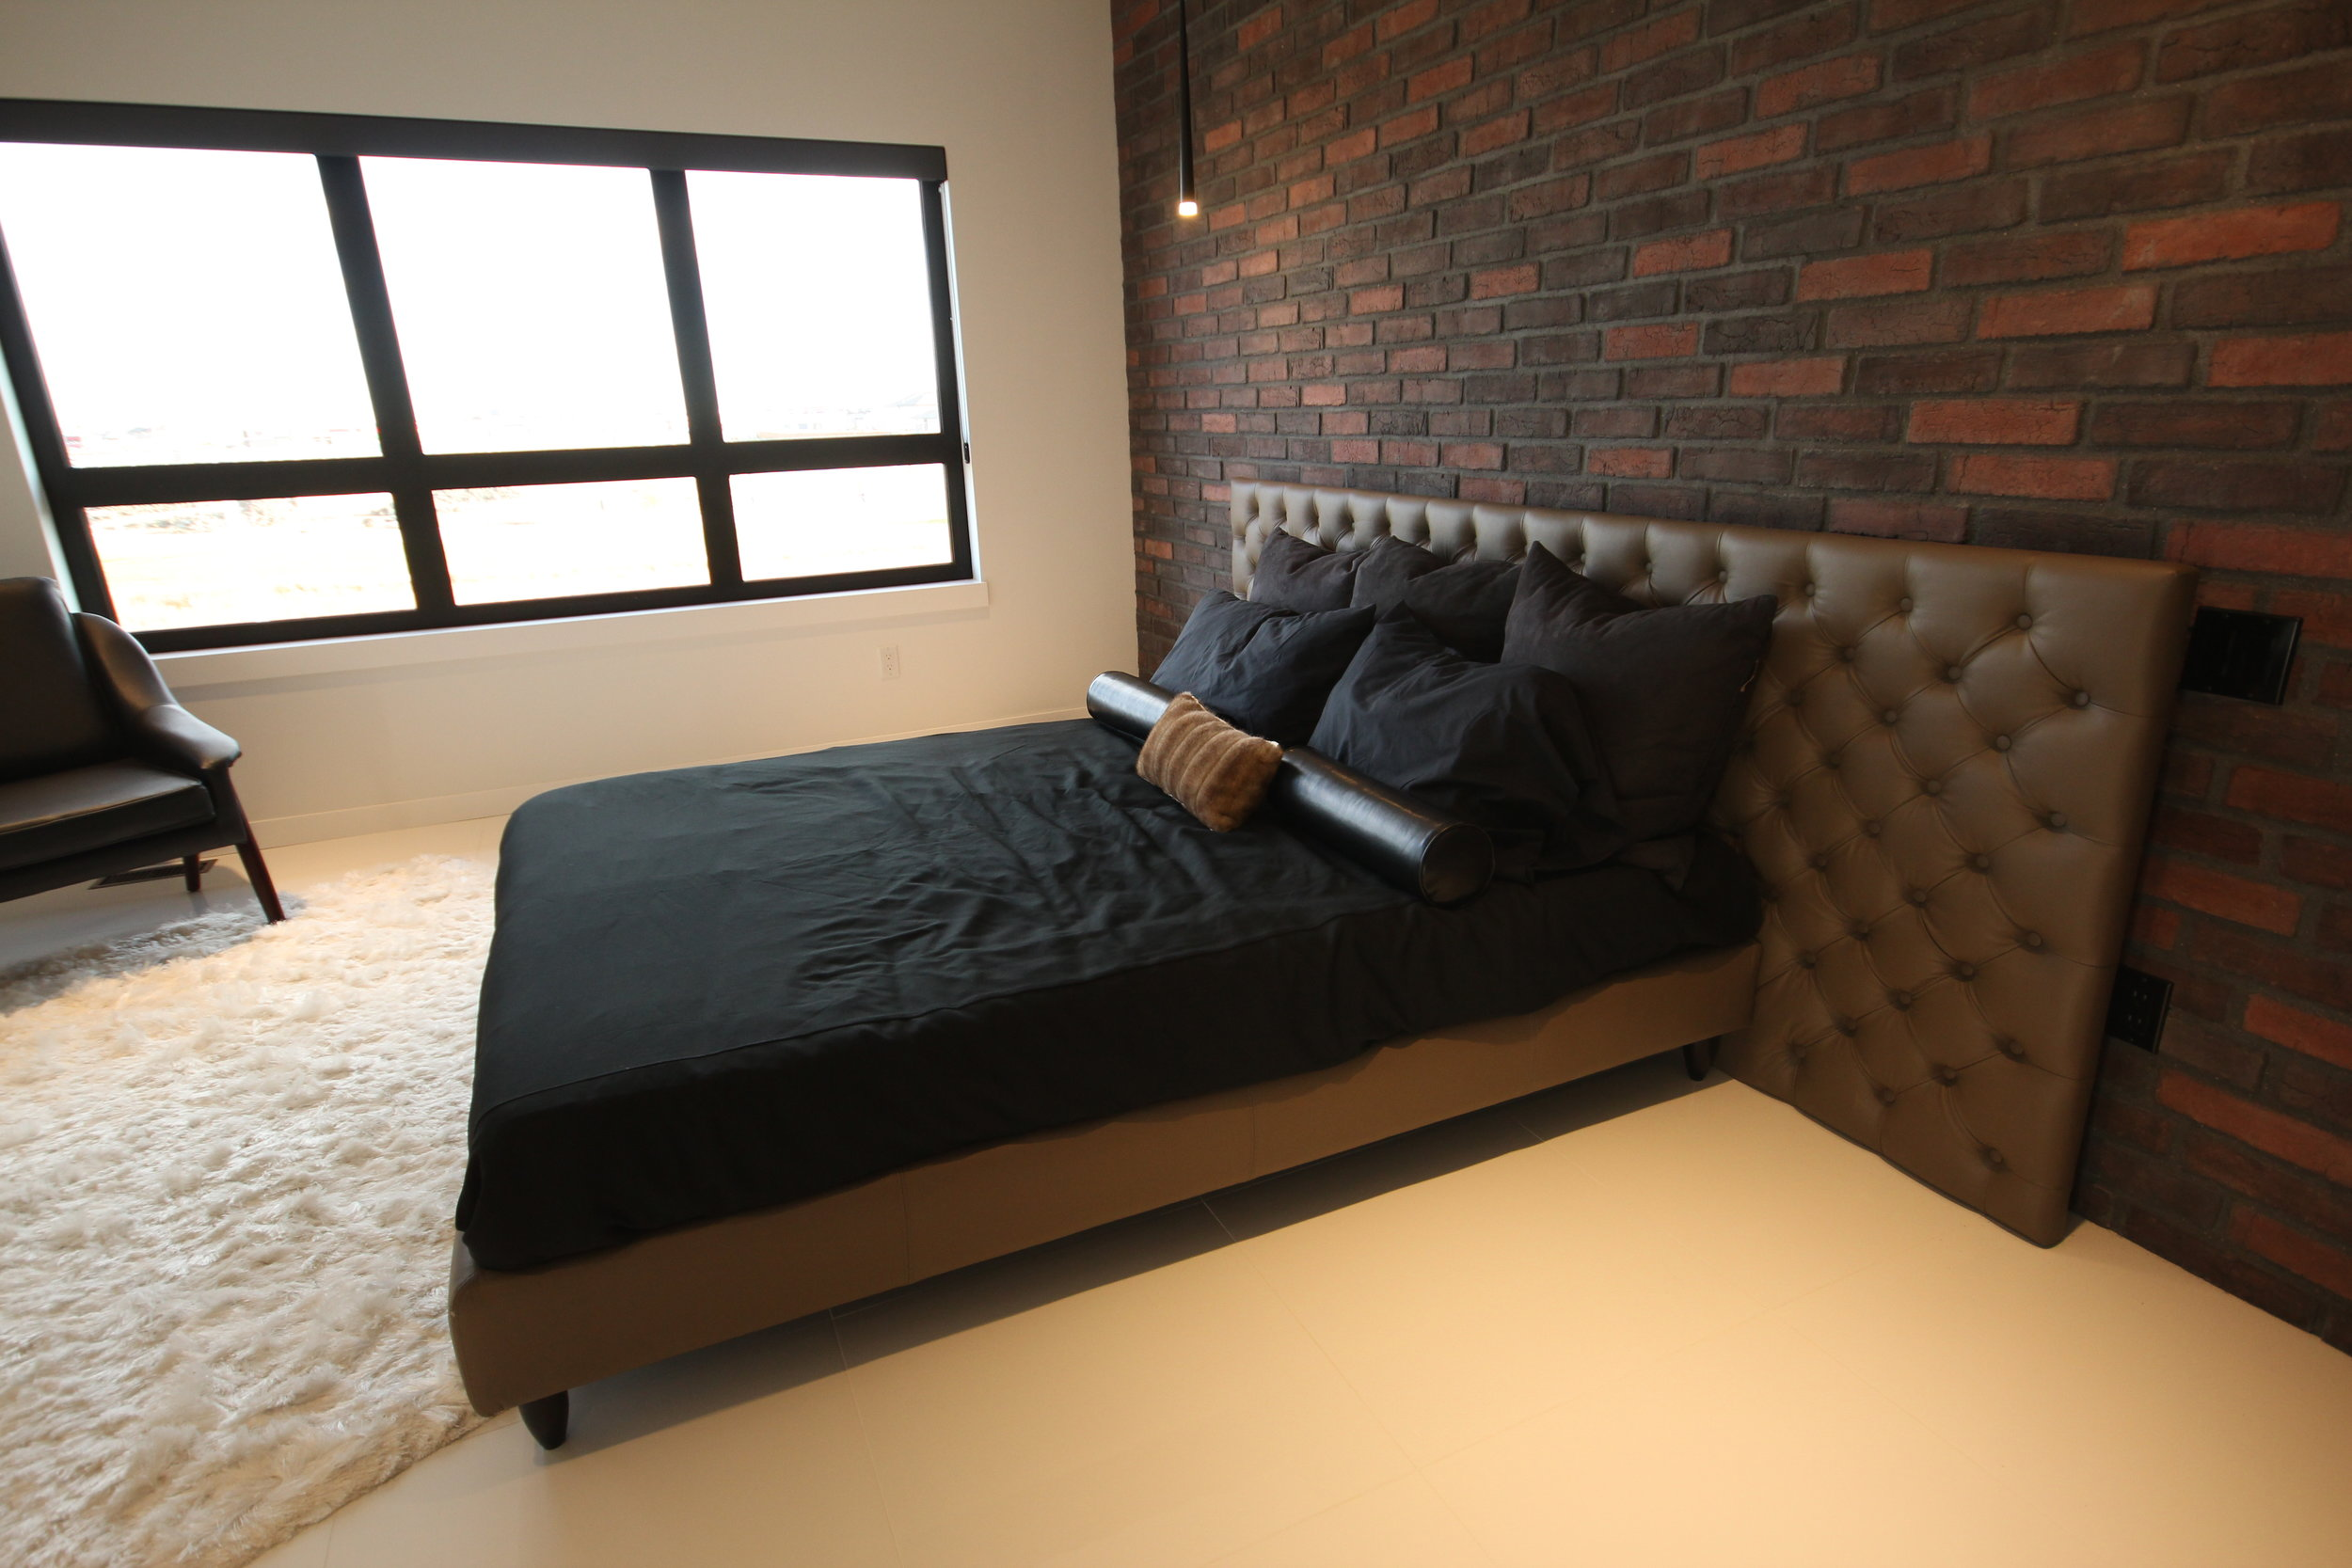 Copy of Mario bed king size with tufted leather headboard